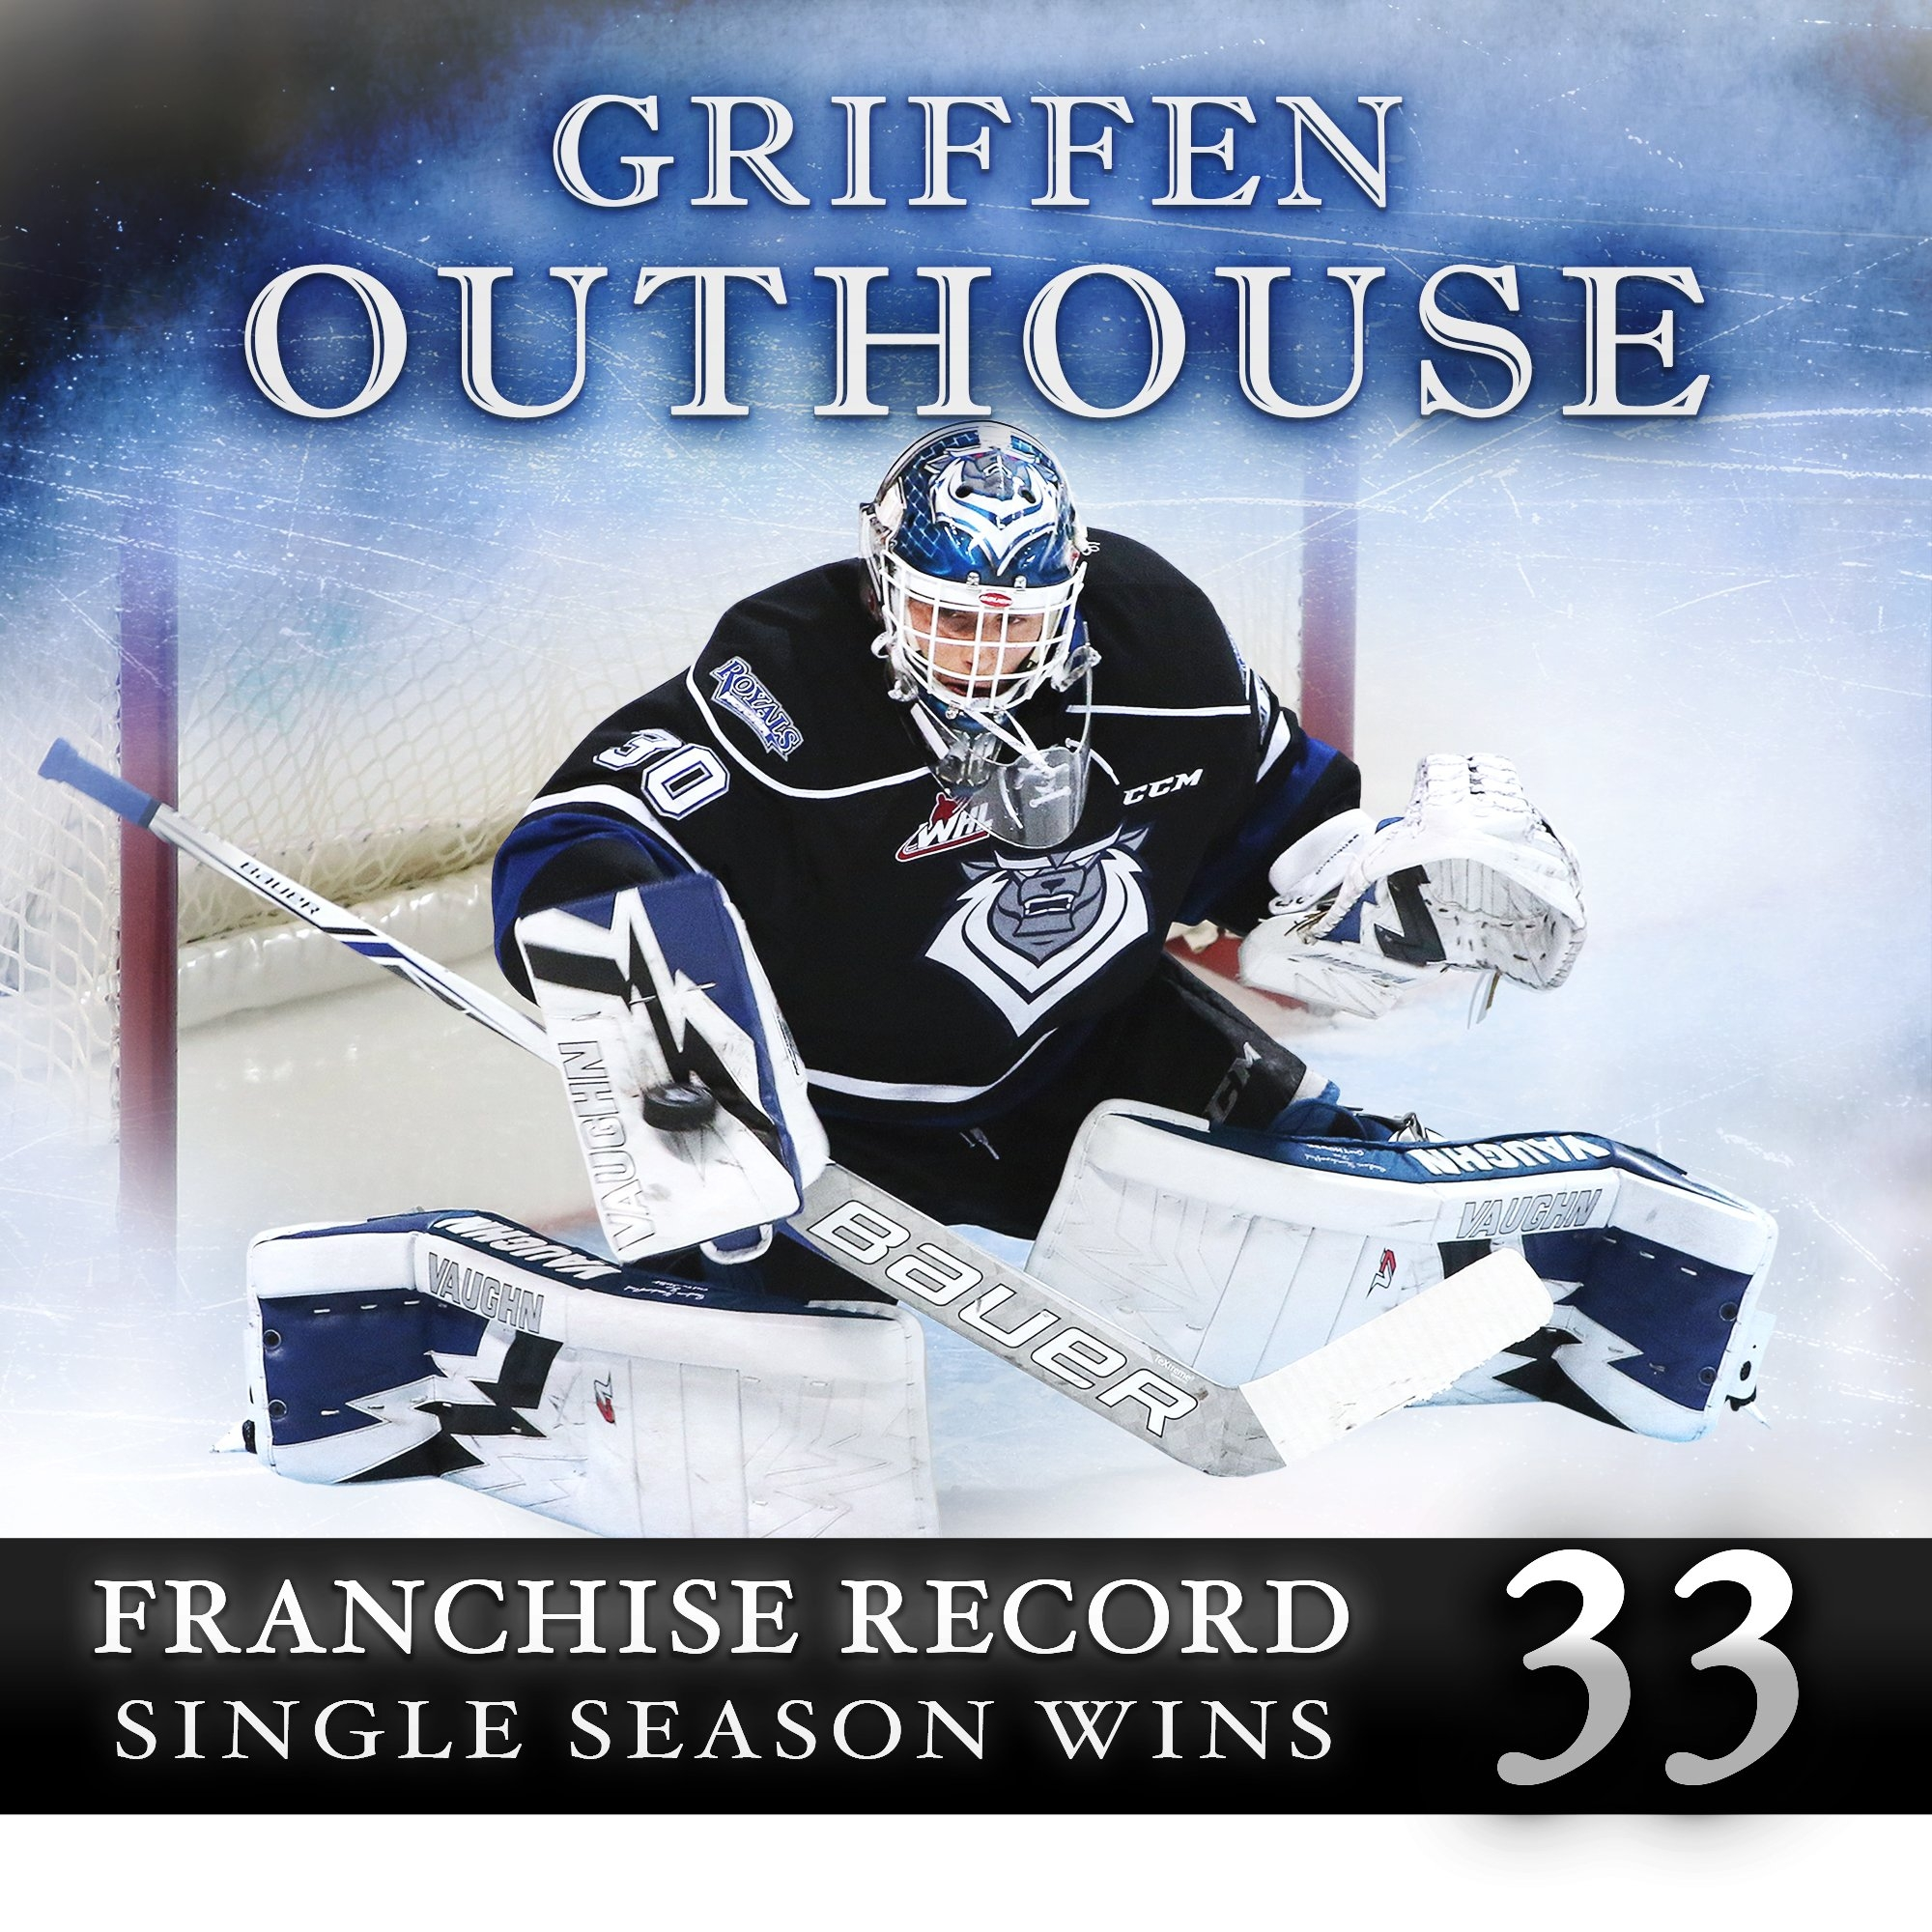 20170303-outhouse-sets-franchise-wins-record-33-wins